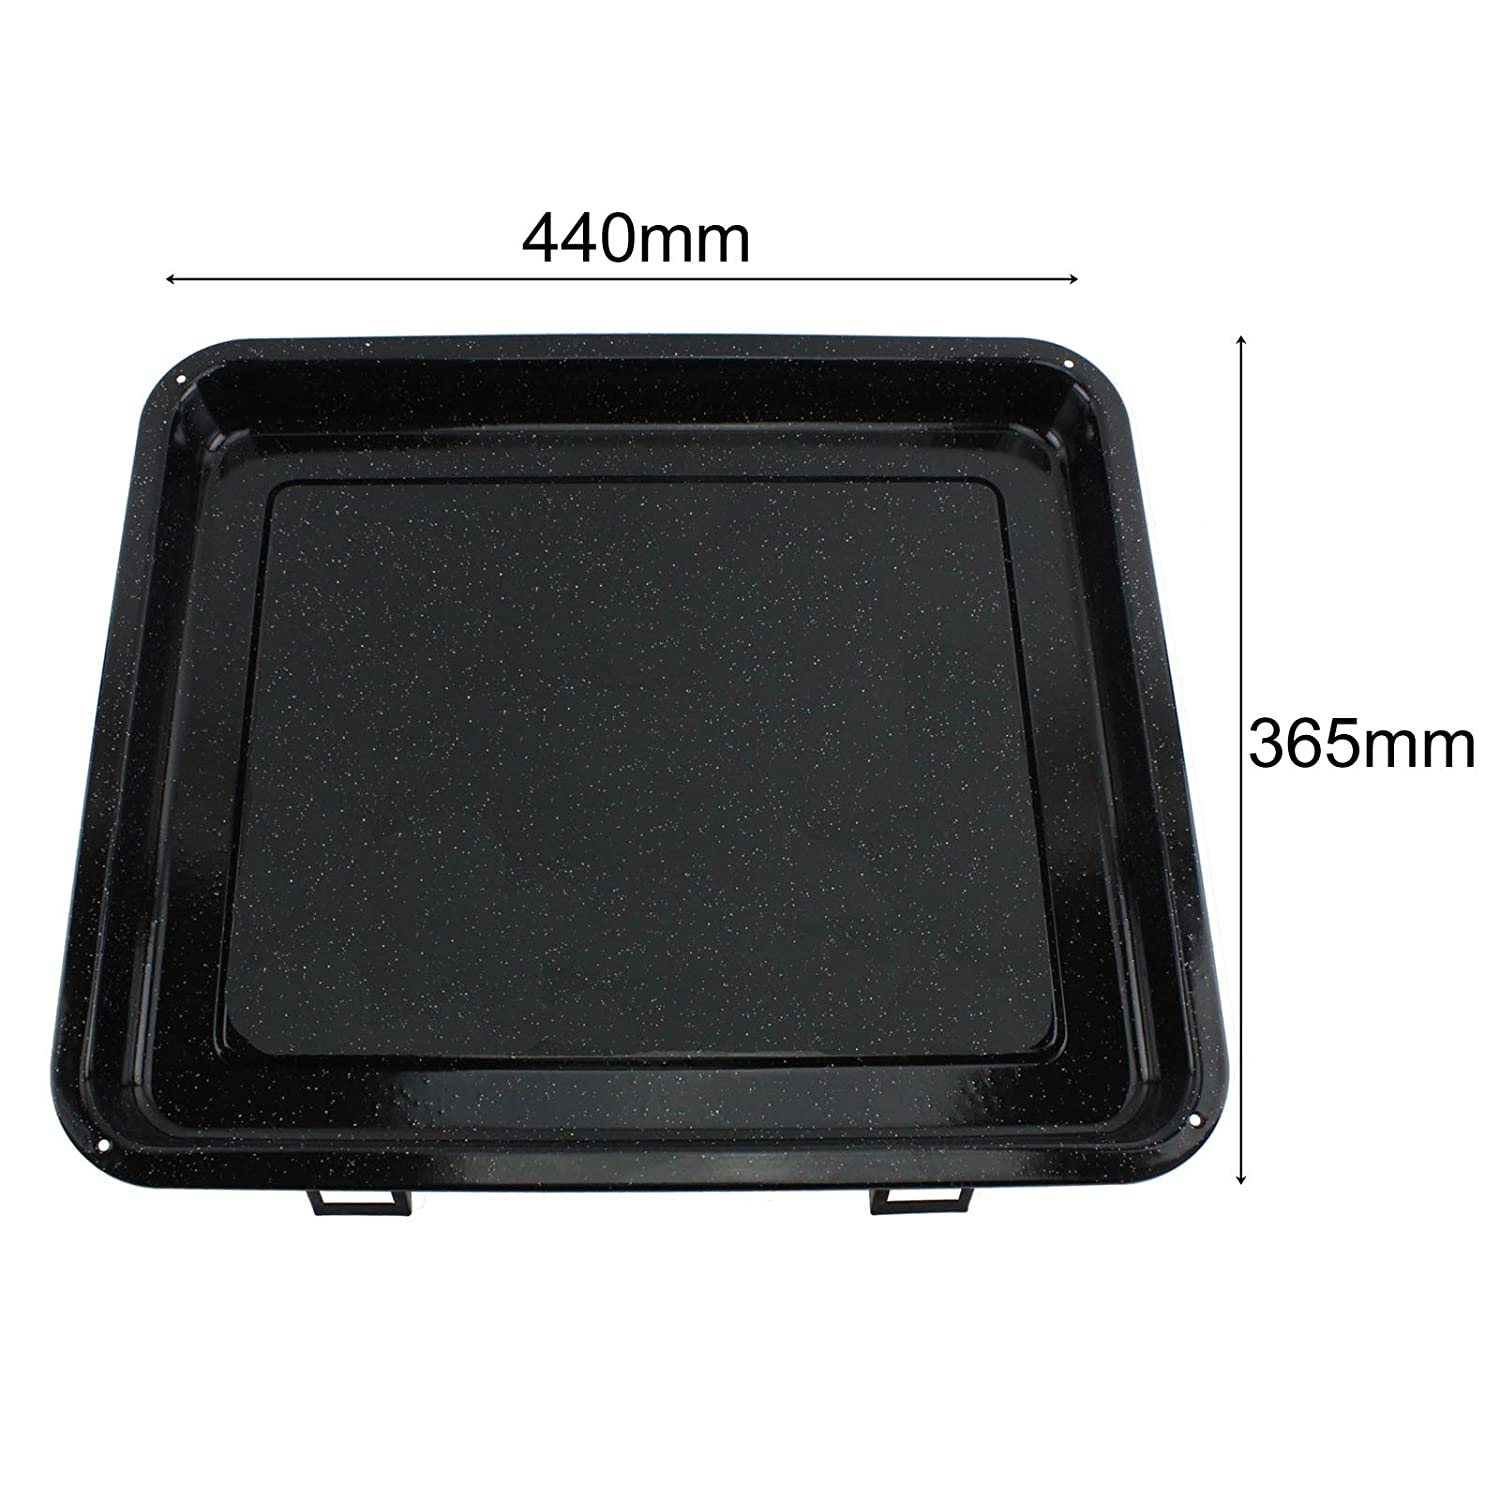 Rack /& Dual Detachable Handles for Whirlpool Oven Cookers SPARES2GO Extra Large Grill Pan